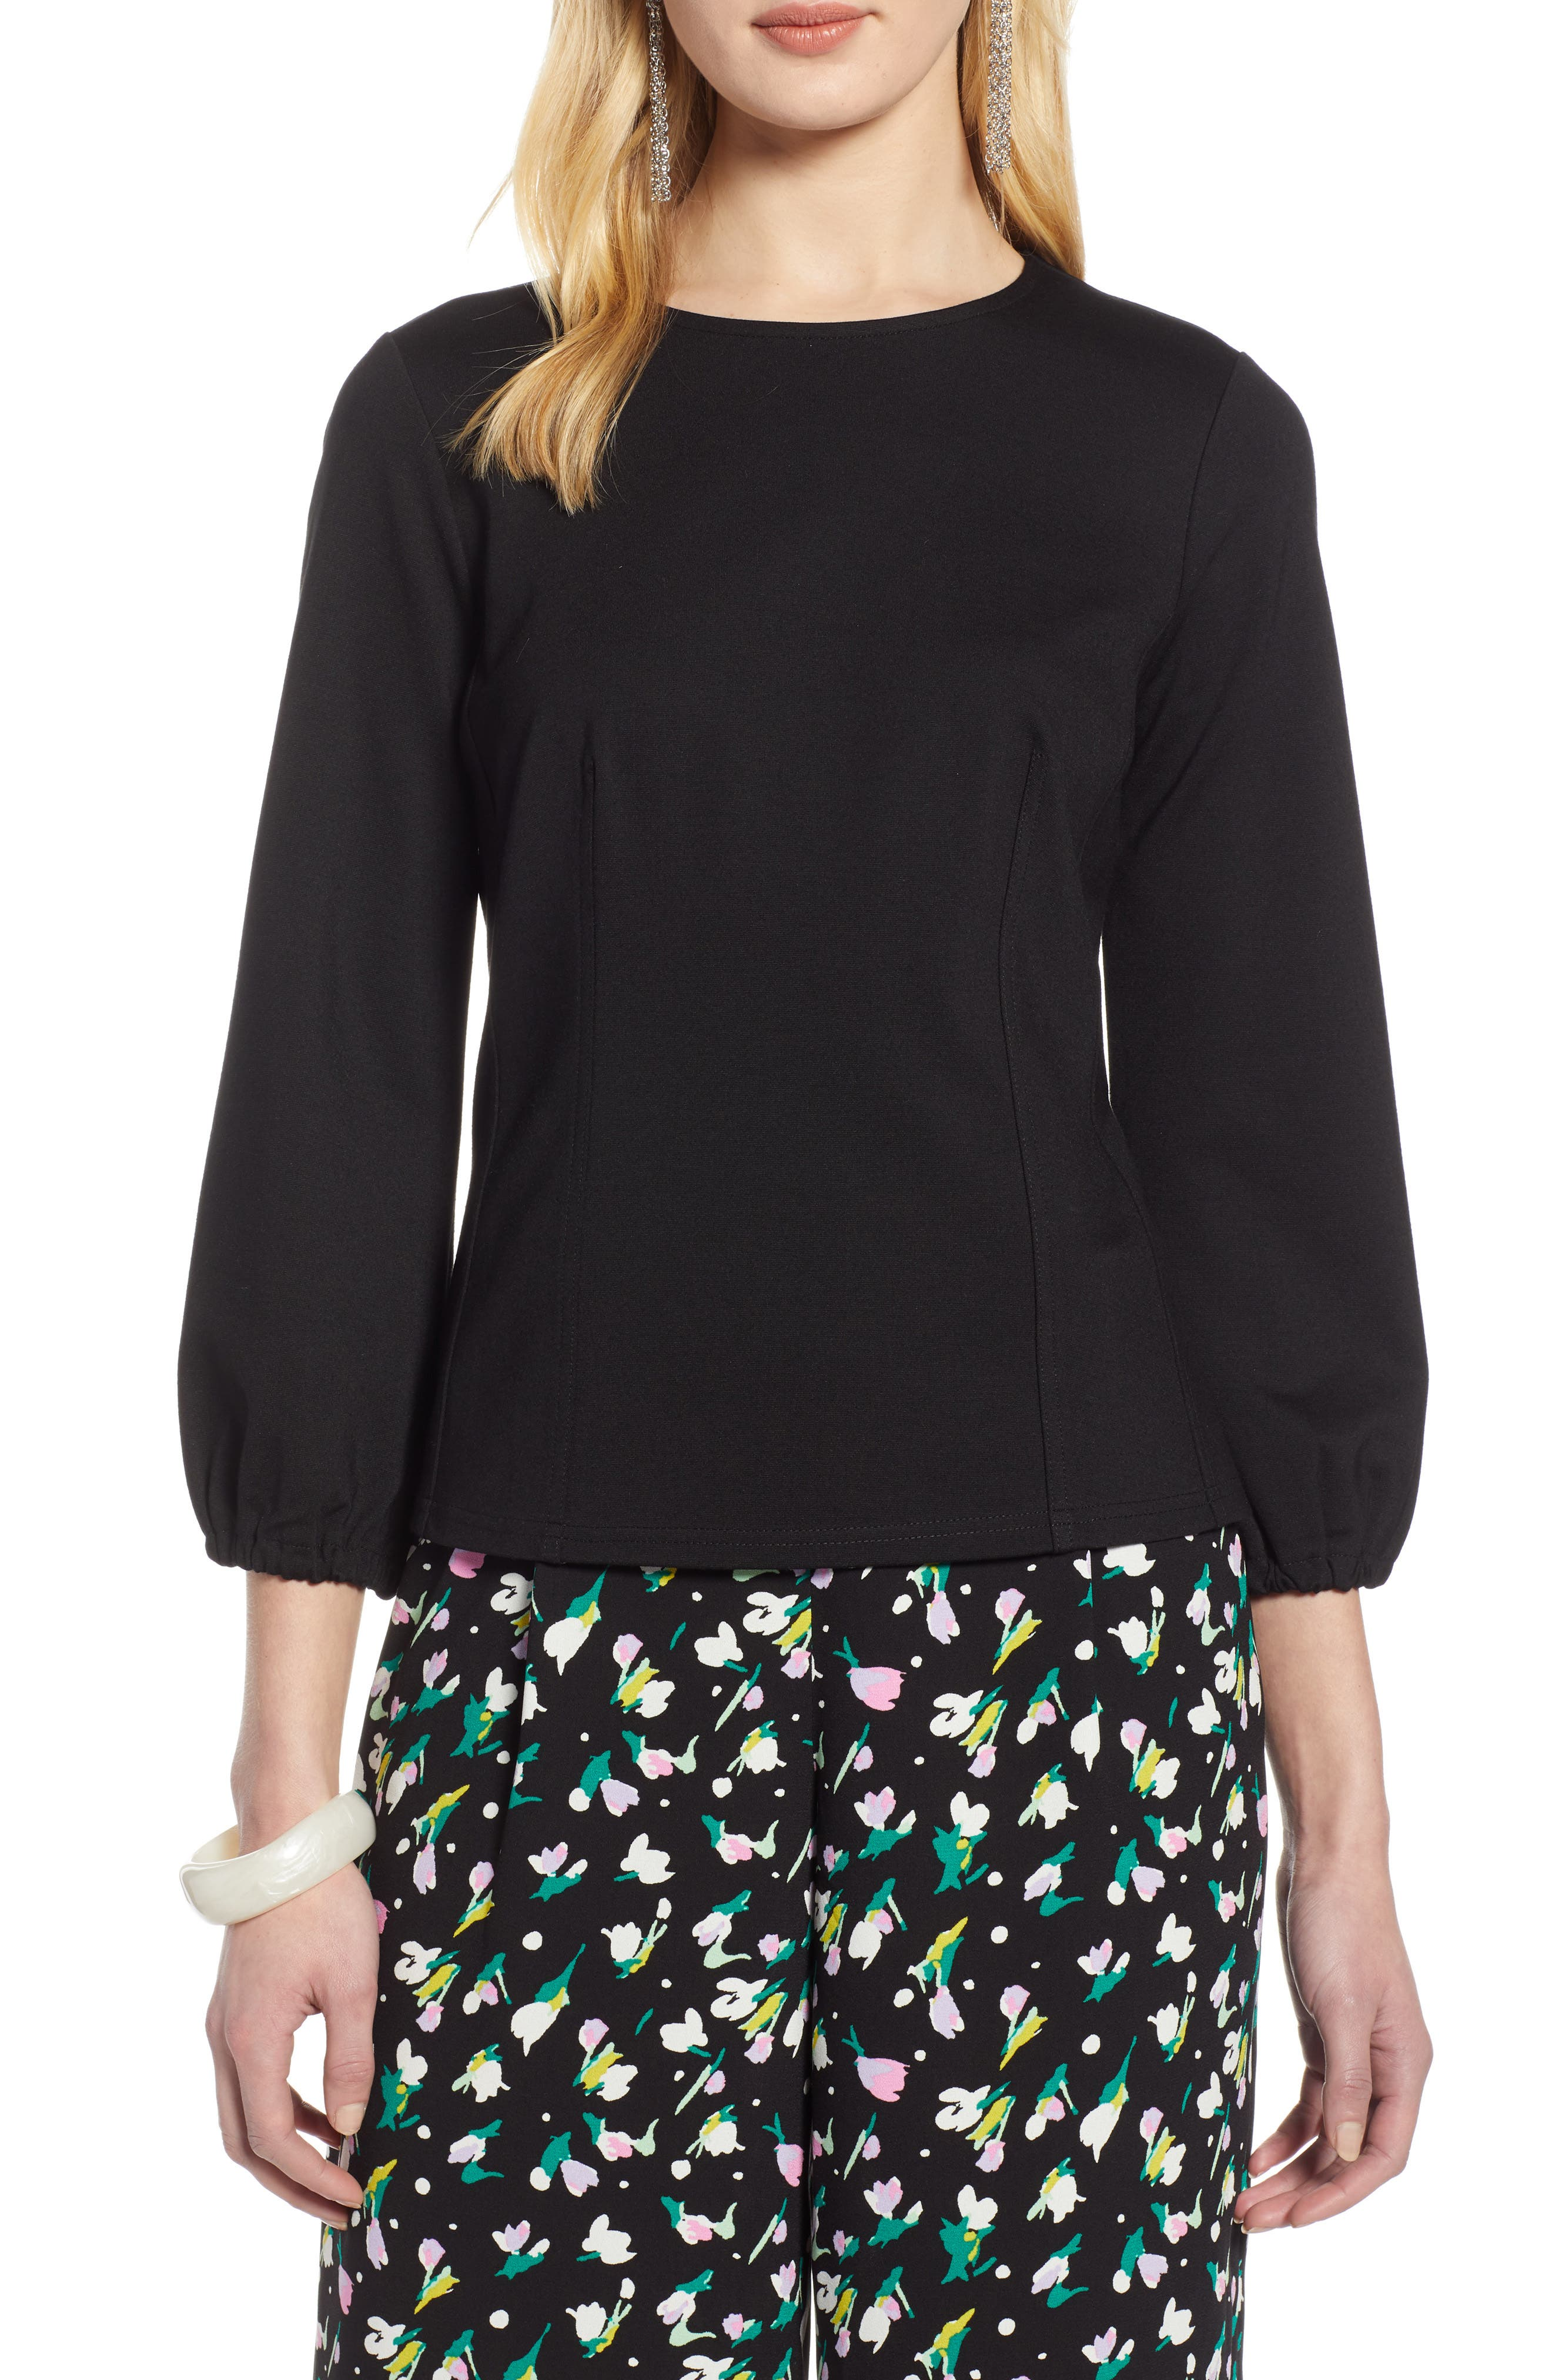 HALOGEN<SUP>®</SUP>, Structured Stretch Knit Top, Main thumbnail 1, color, BLACK